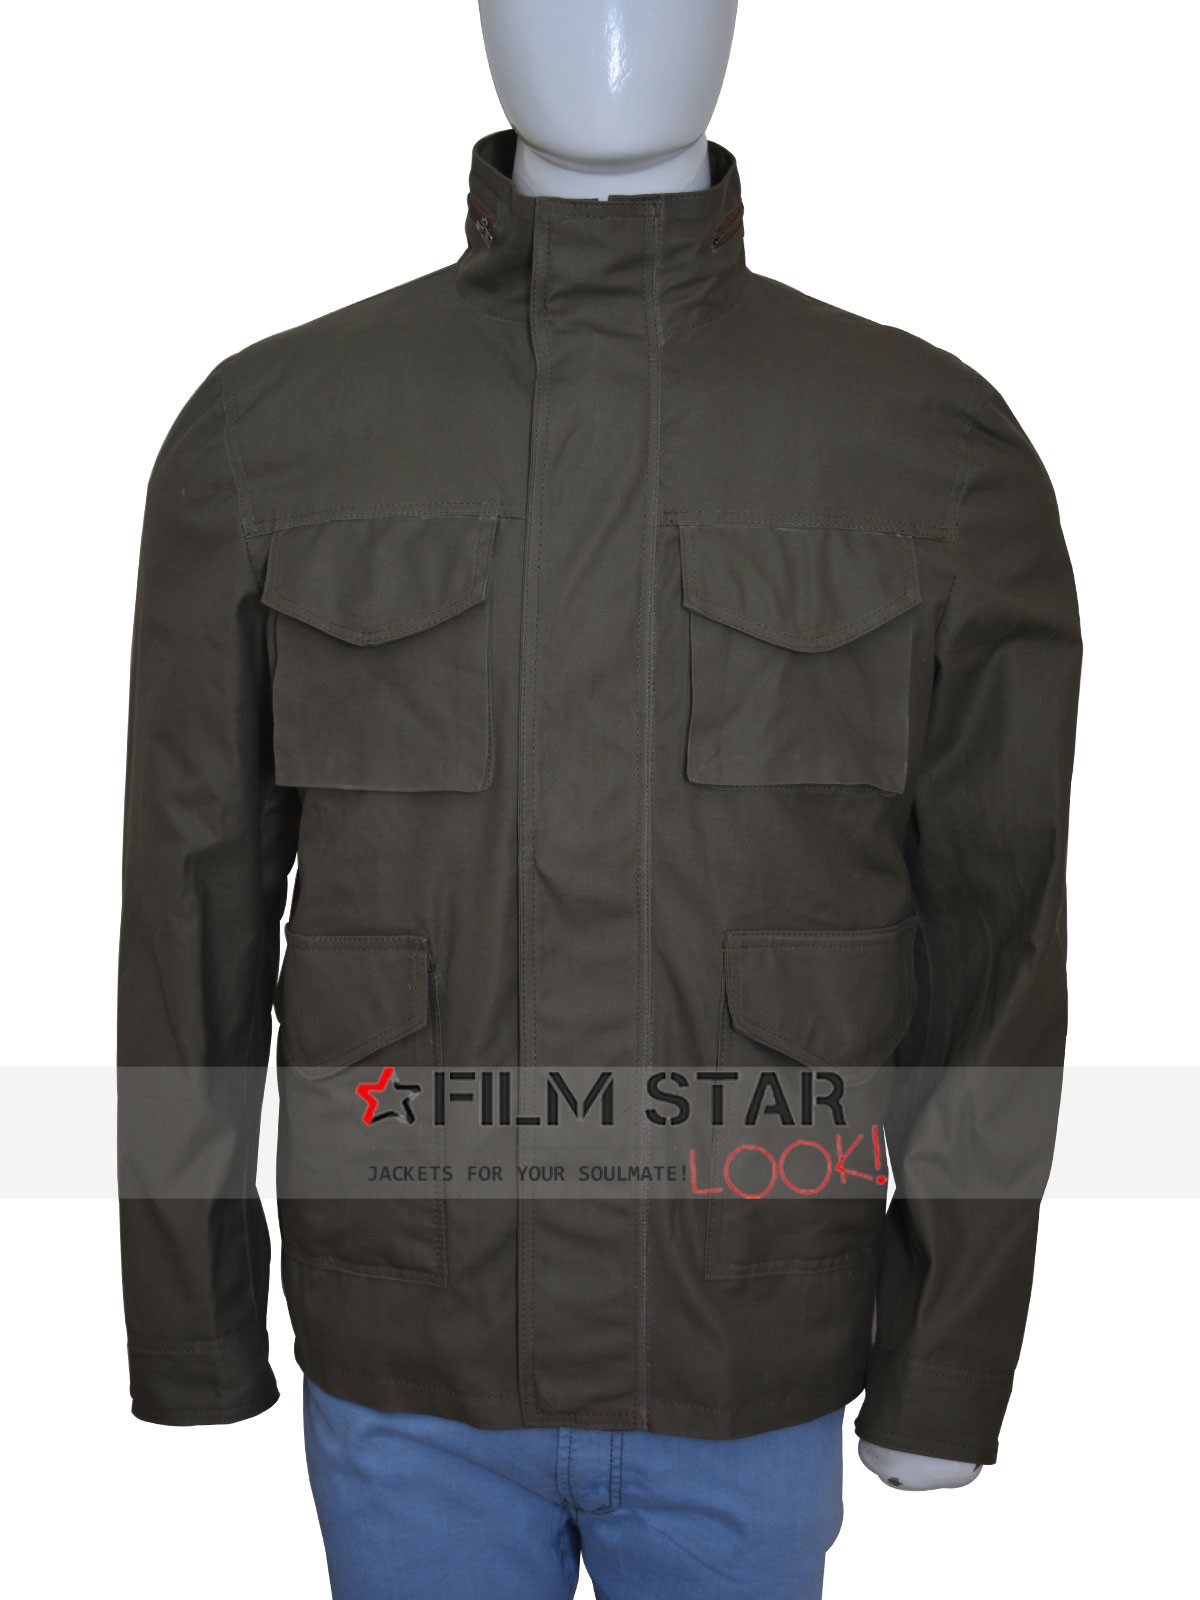 Kevin Costner Movie Criminal Jericho Stewart Jacket